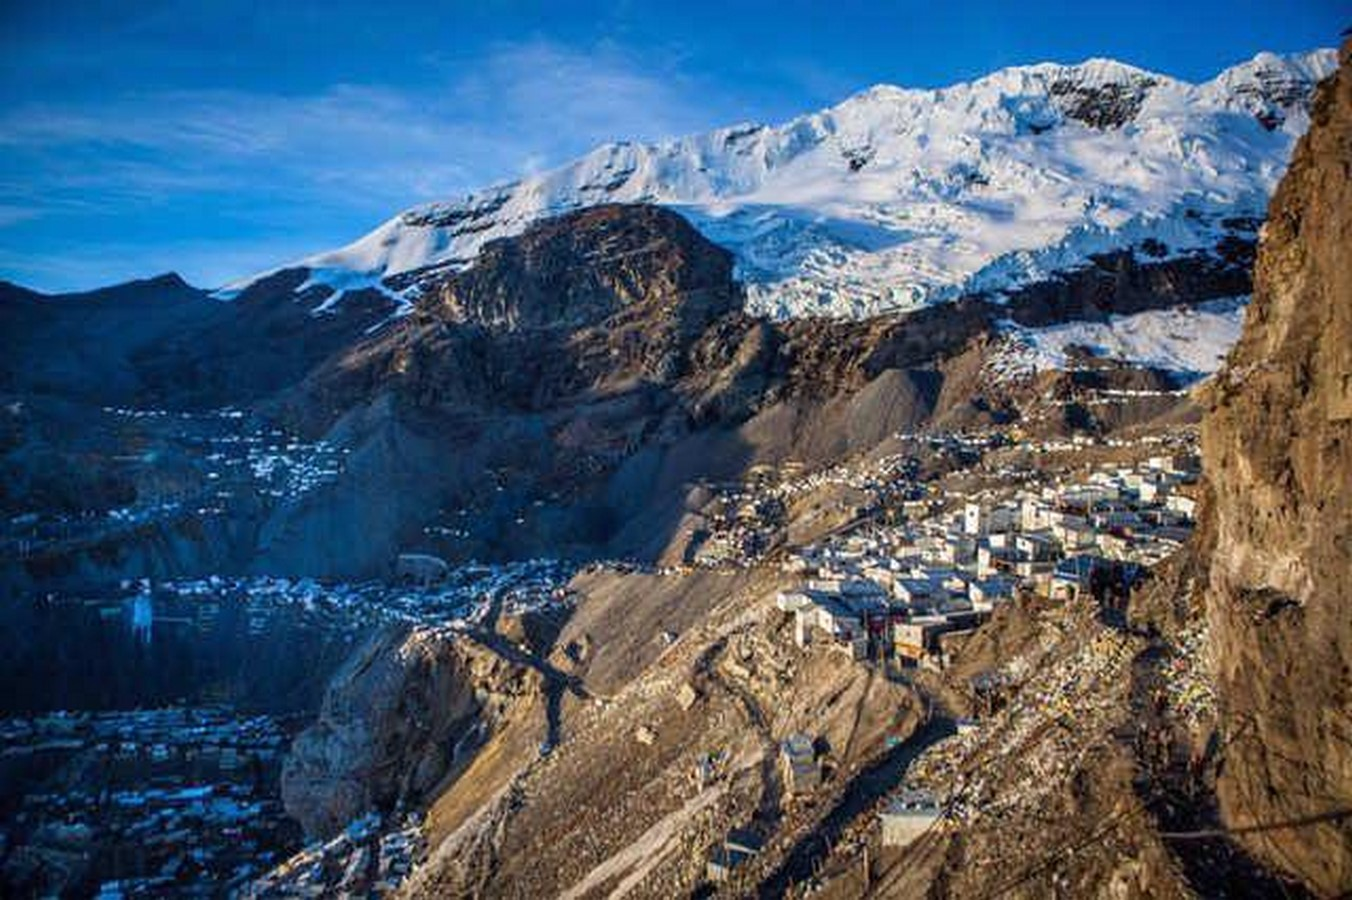 An architectural review of the La Rinconada : The highest human habitation in the world - Sheet1